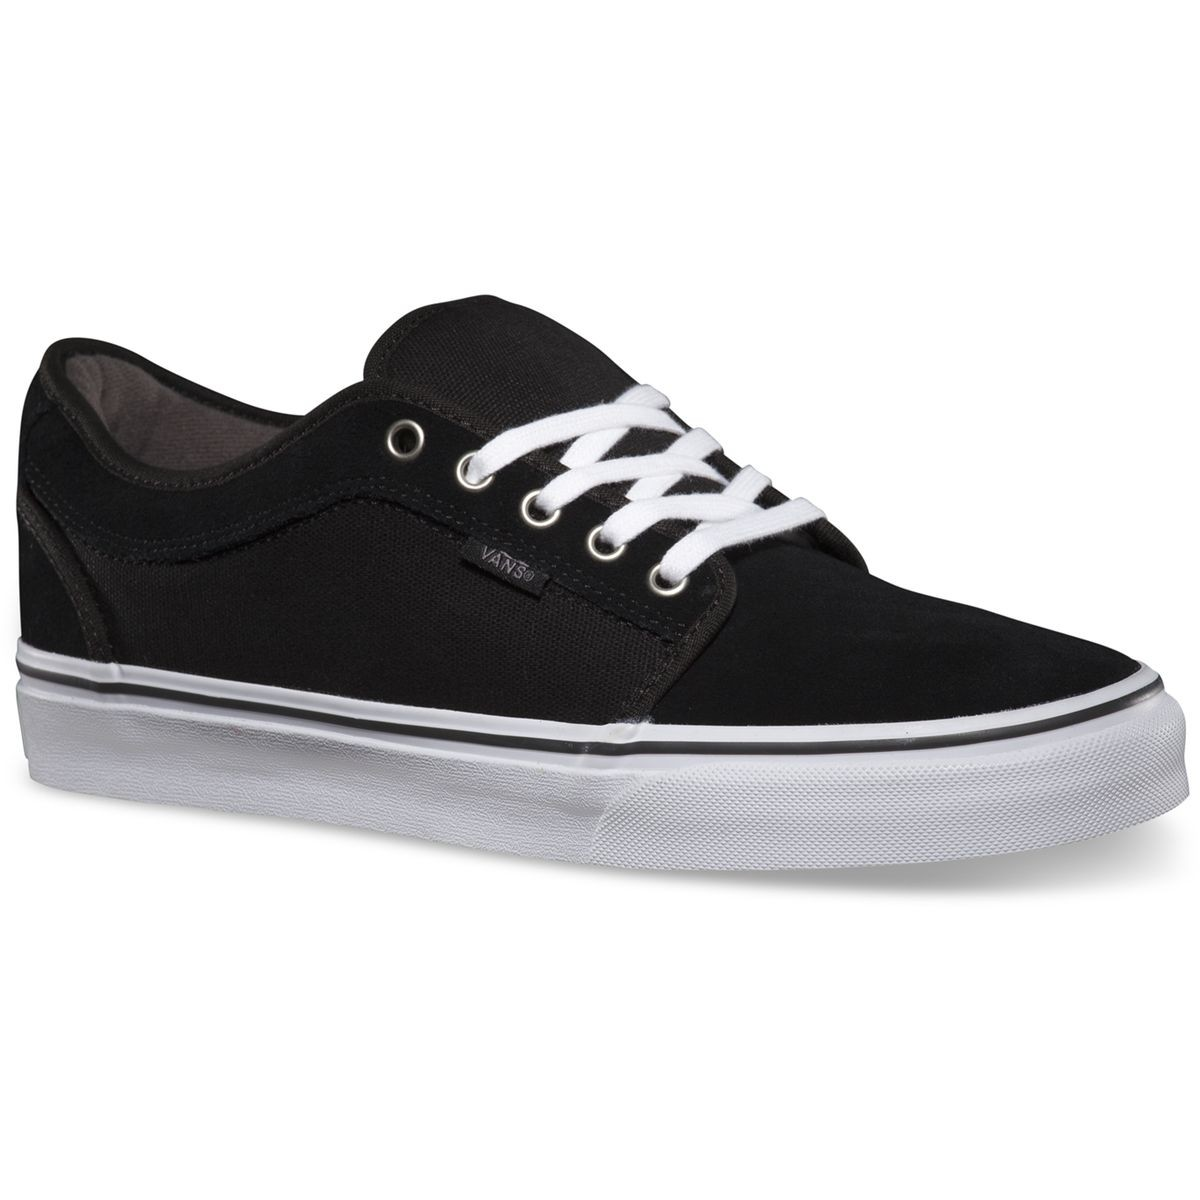 Vans Chukka Low Shoes - Black / Pewter / White